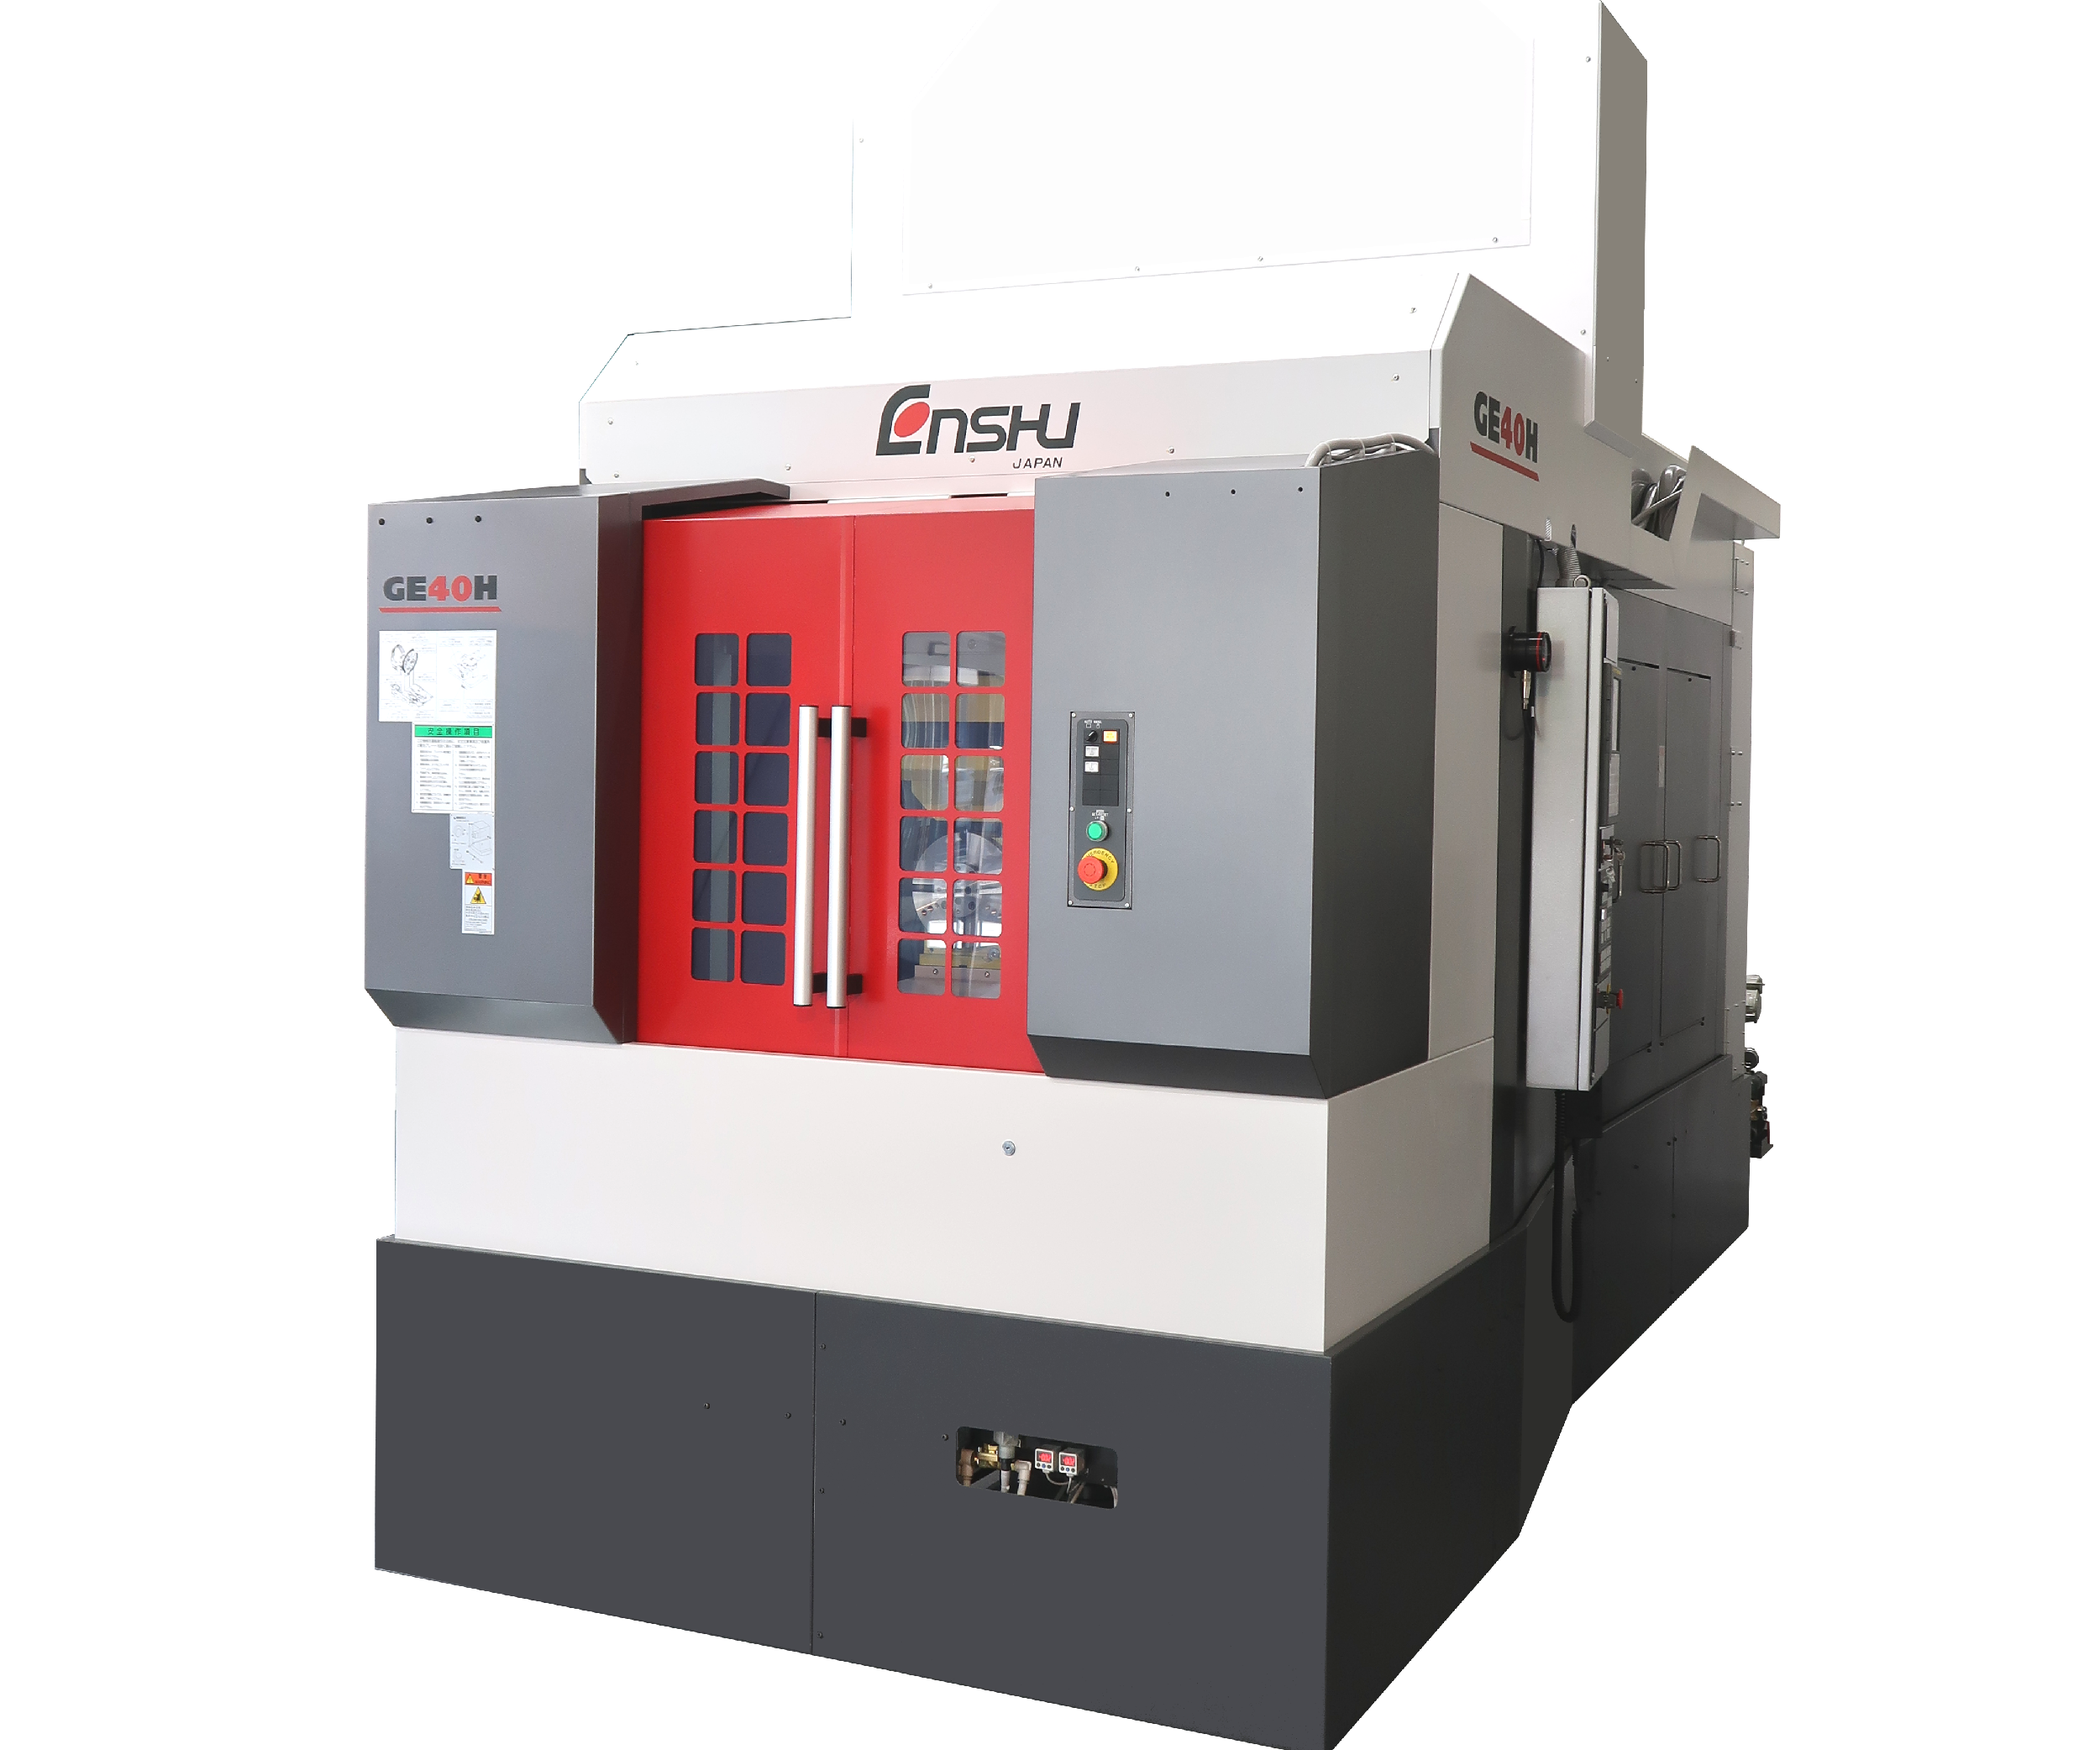 Enshu GE Series Machines